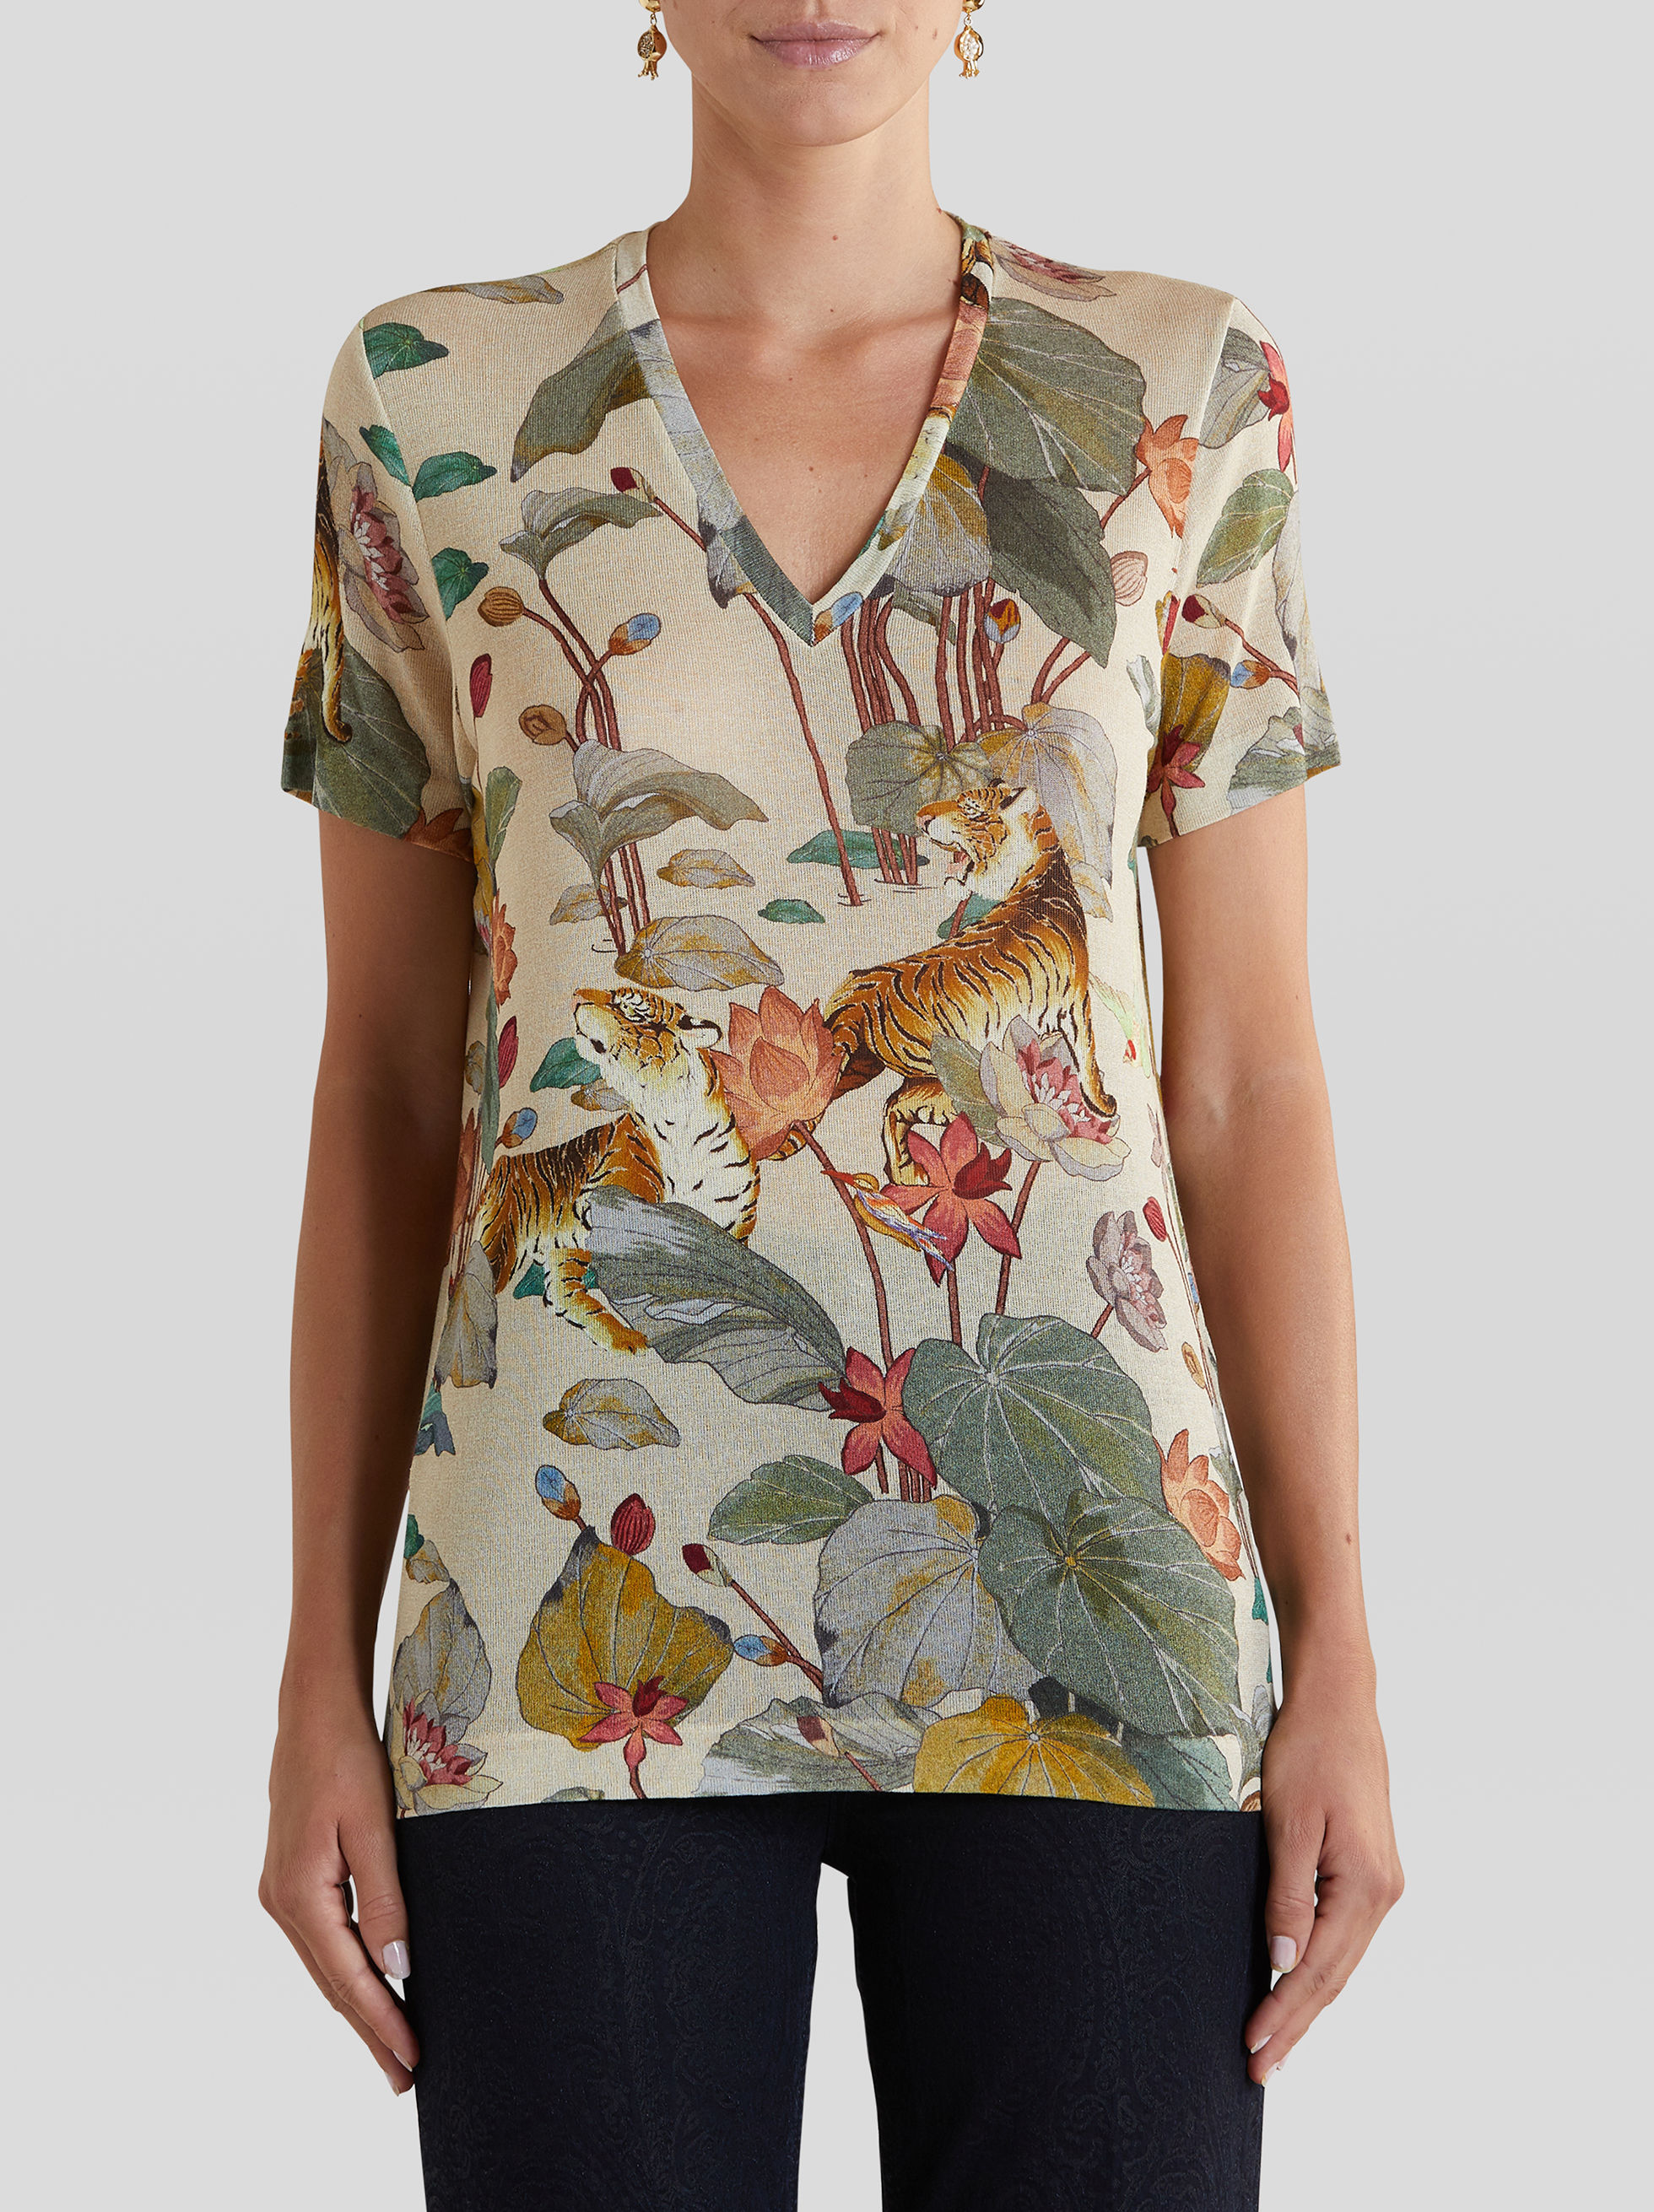 T-SHIRT WITH TIGERS AND WATER LILIES